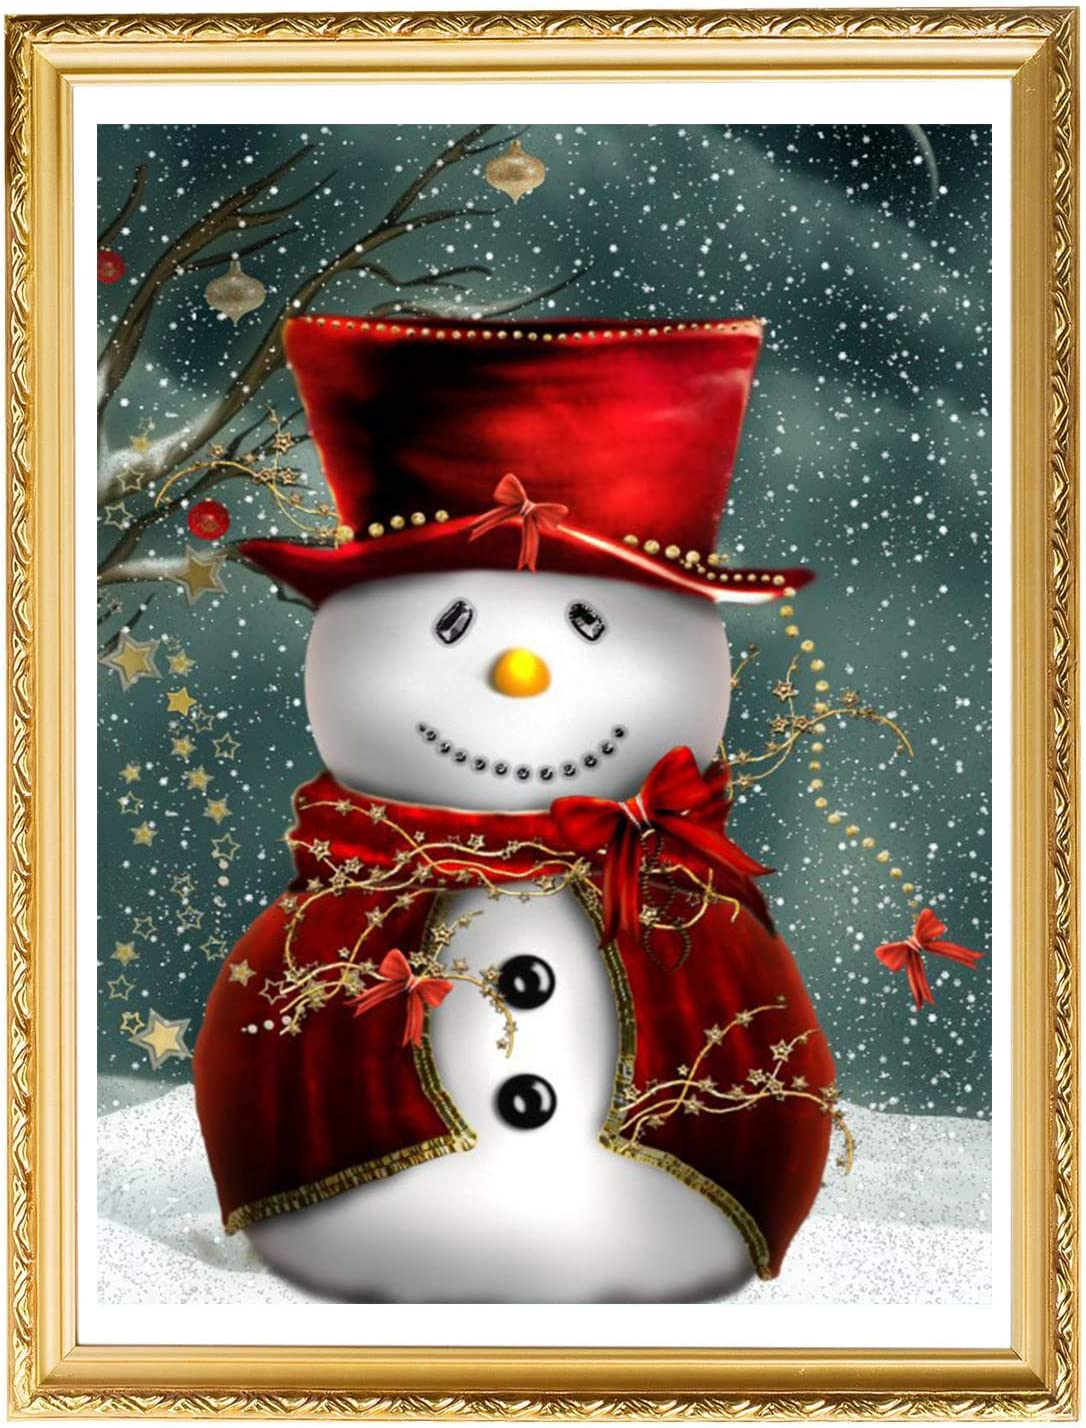 Q-DIRT PRO Christmas Snowman by Number 5D Diamond Painting Kit DIY Round Rhinestone Embroidery Painting for Home Wall Decoration Artwork 12 x 16